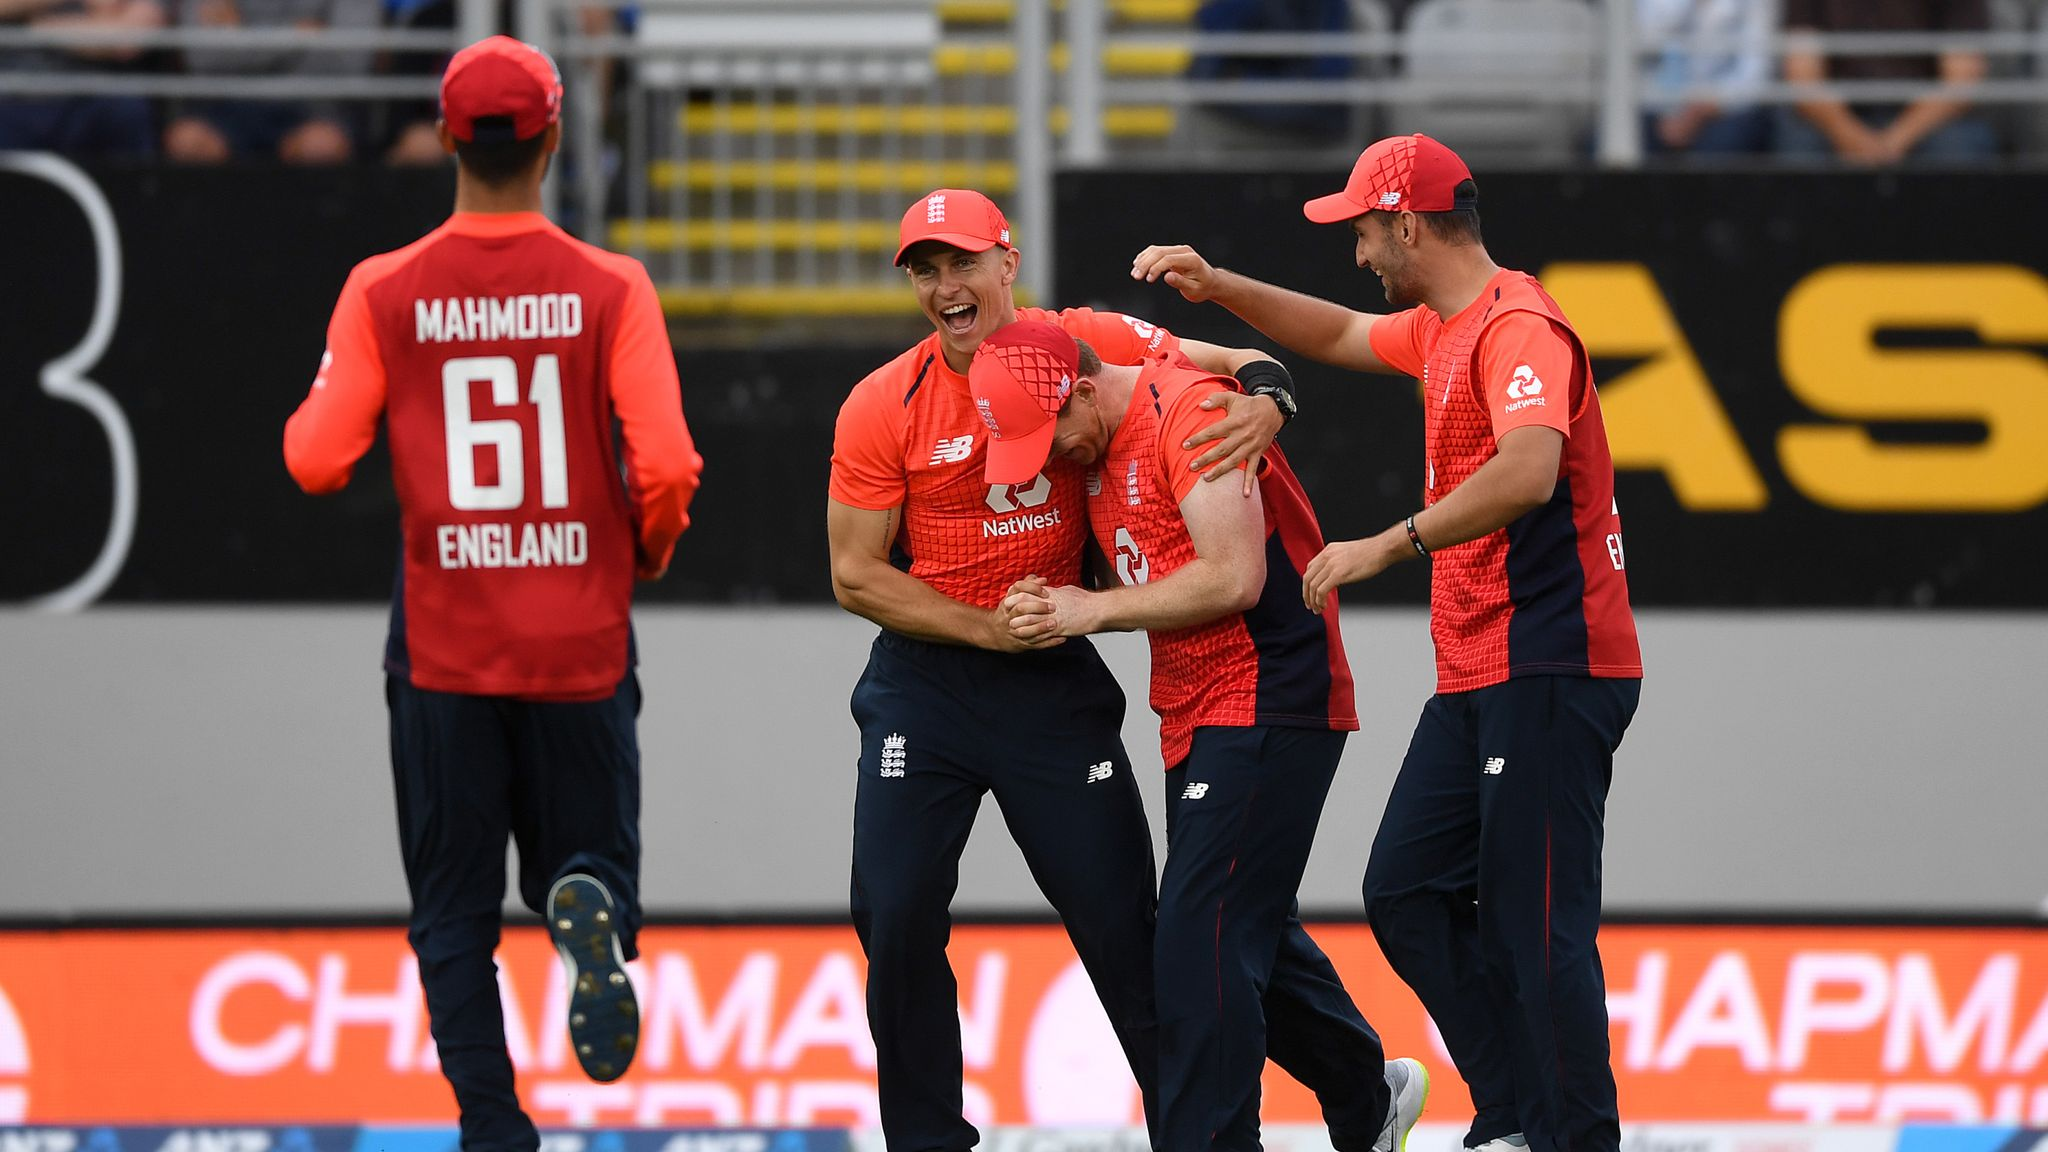 England spot on in Super Over as they beat New Zealand, says Nasser Hussain